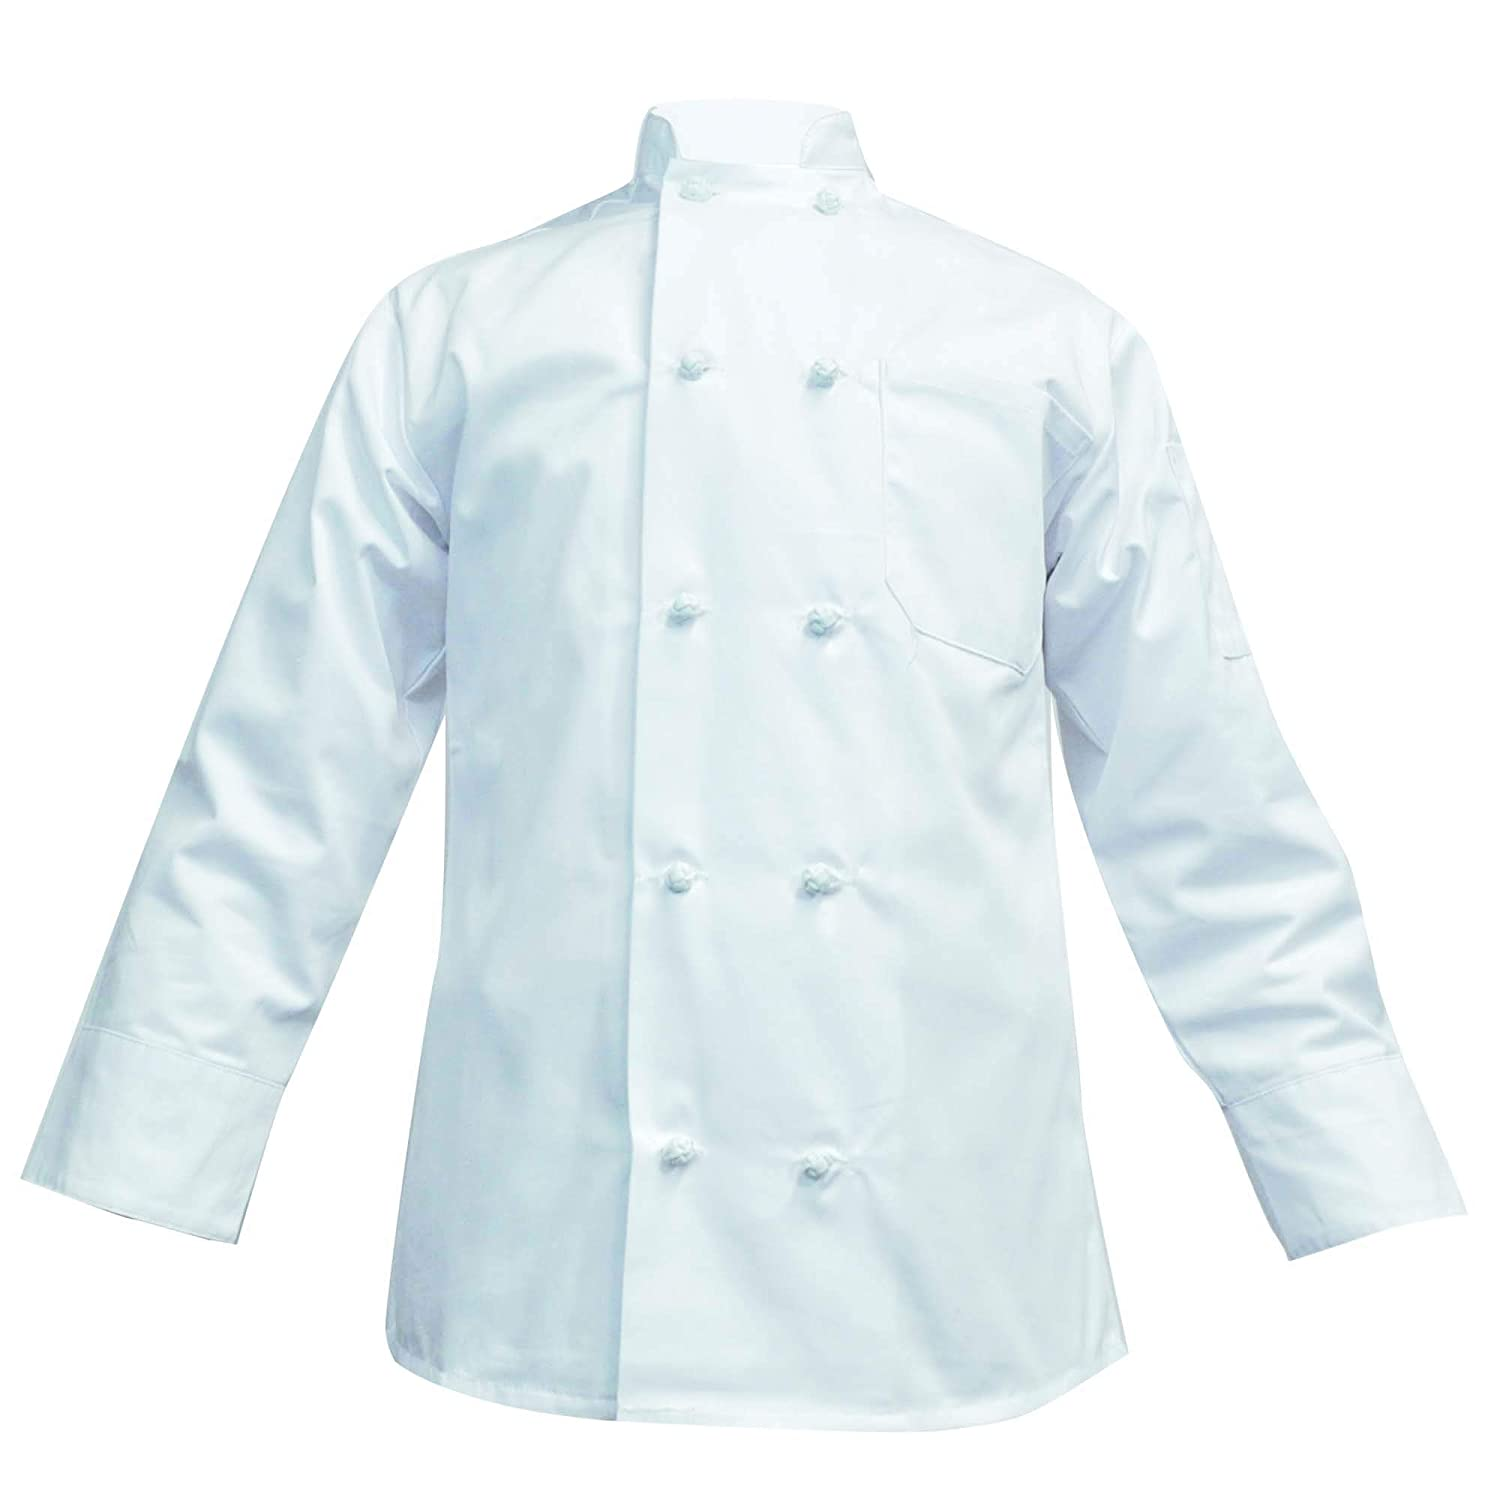 Stylish Unisex Chef Long Sleeve Coat- Easy-Care